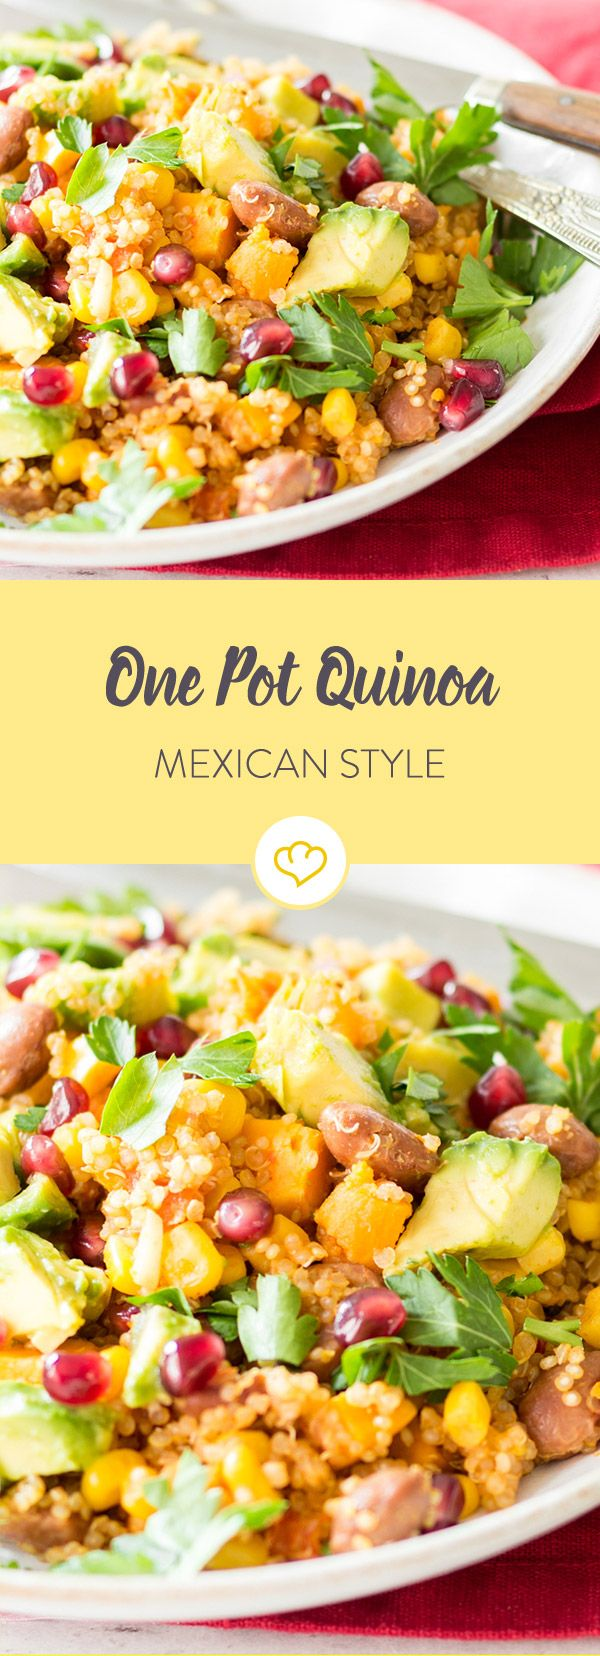 Photo of One Pot Quinoa 'Mexican-Style' with pomegranate seeds